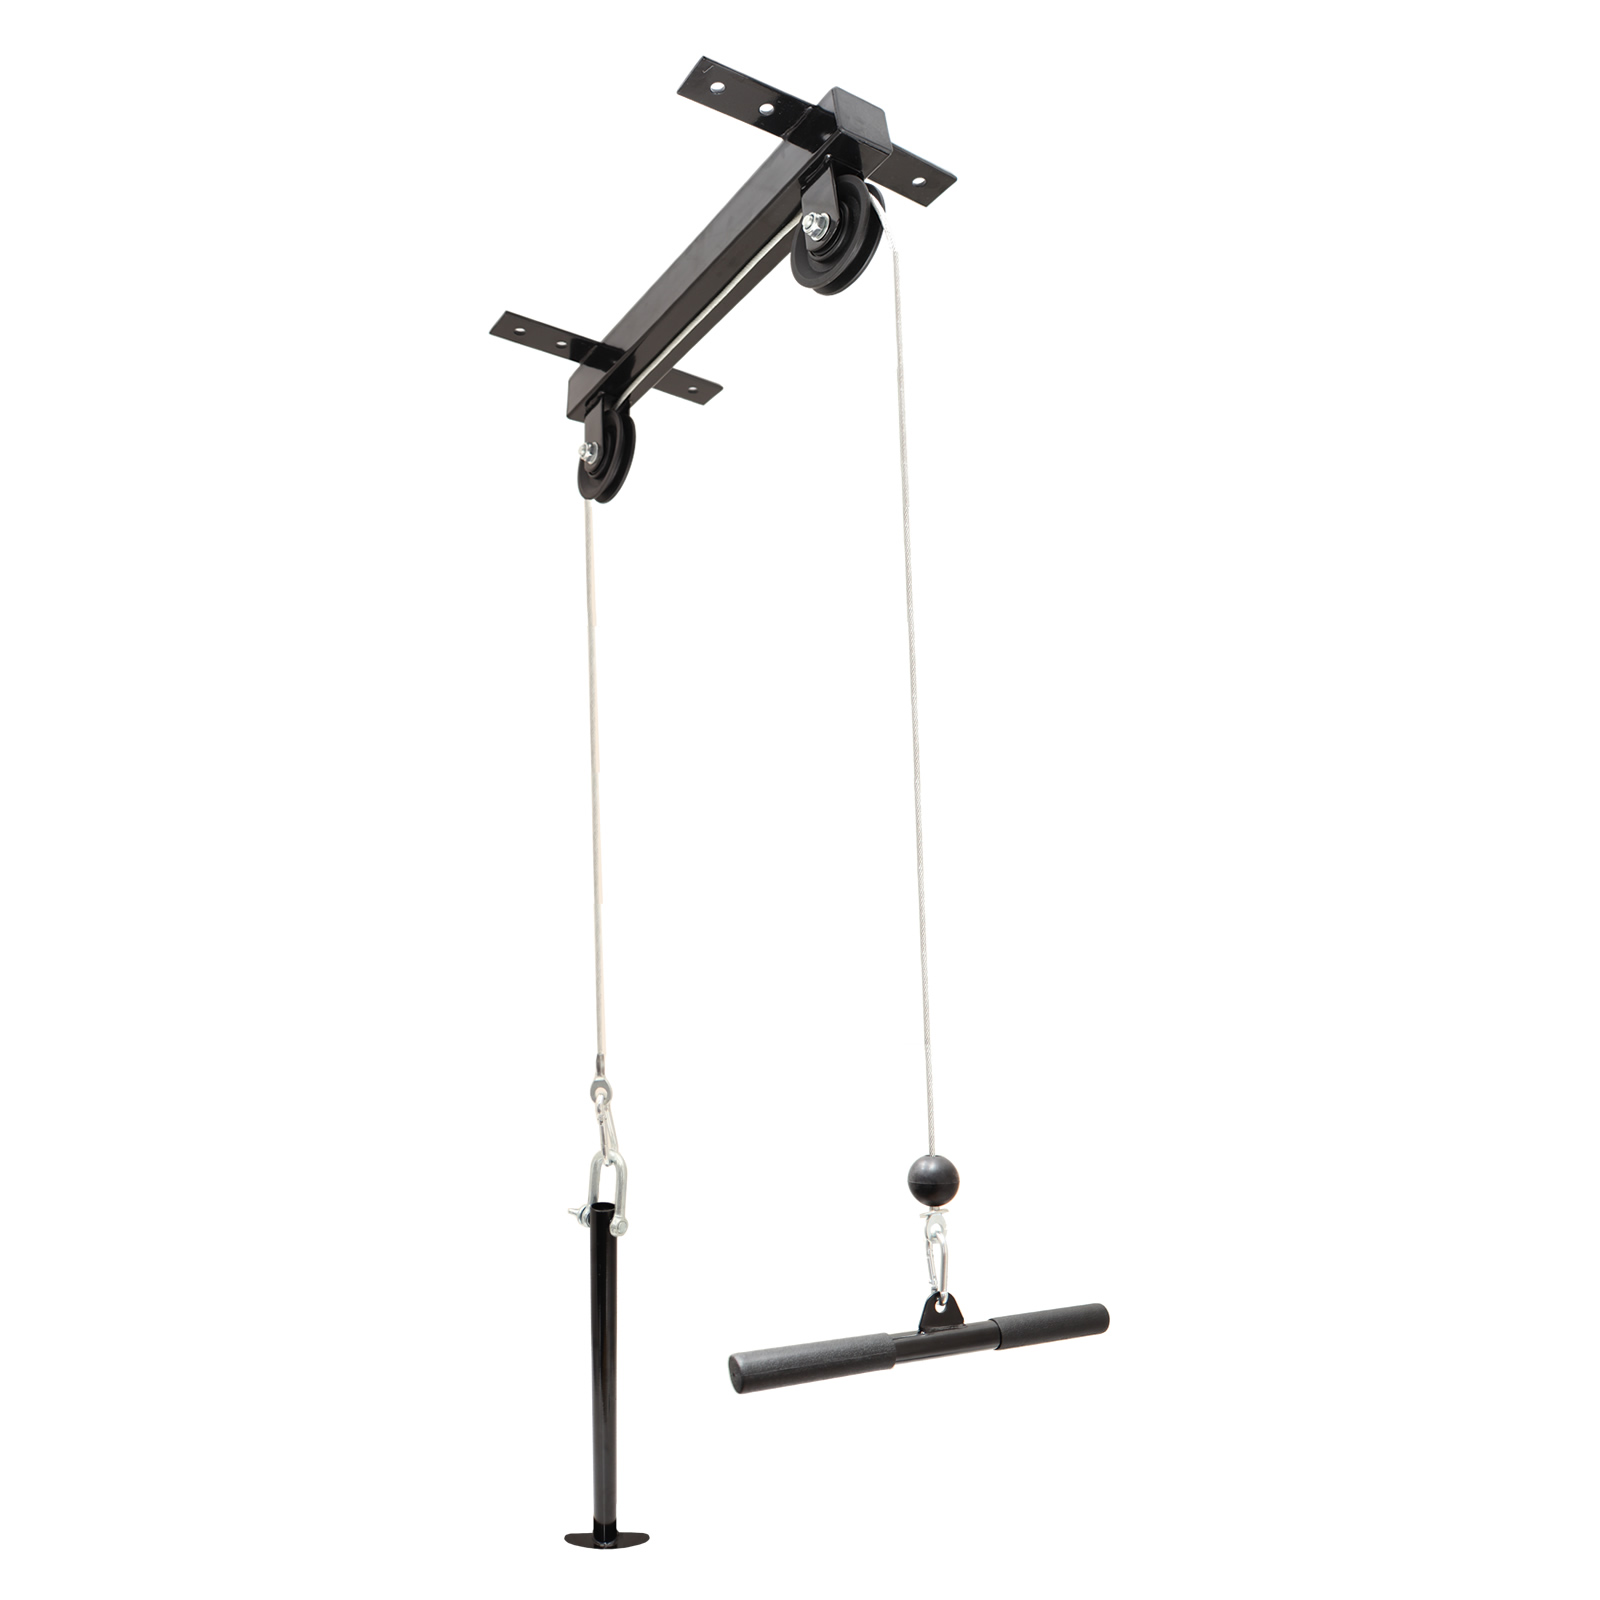 Ceiling Mounted Lat Pull Down Cable Pulley Machine Home